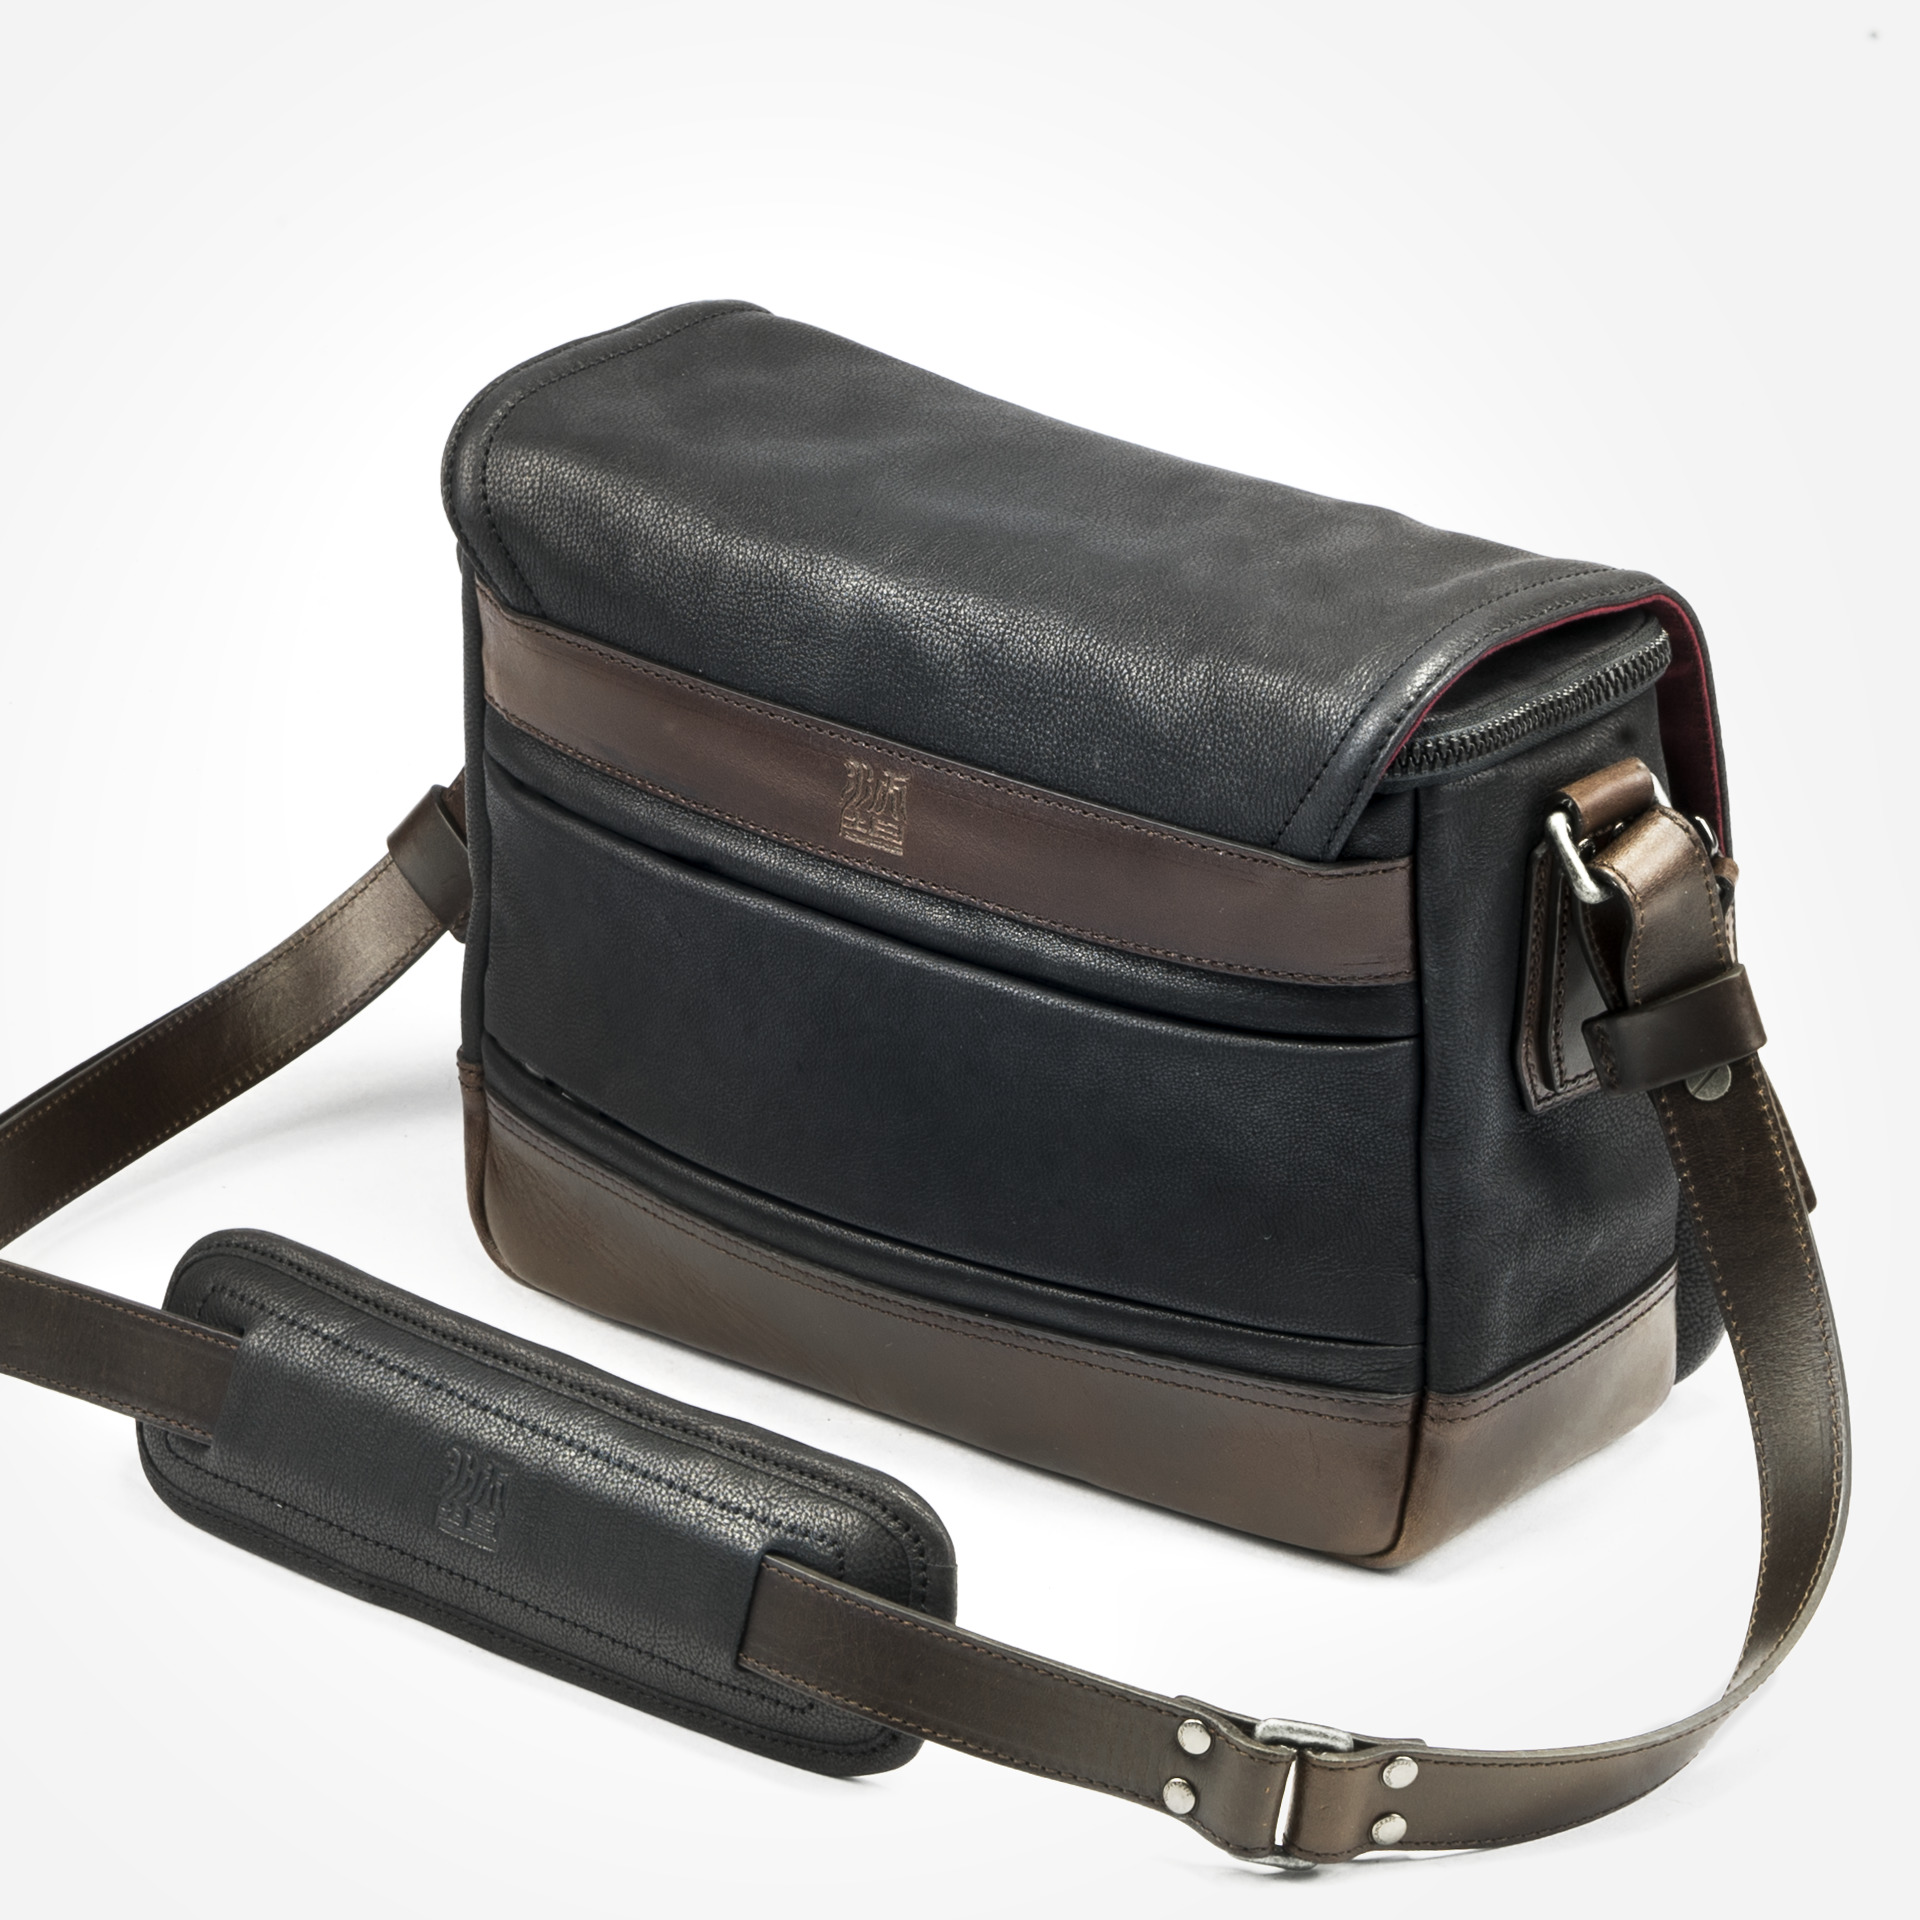 Ryker Full Leather Camera Bag M Size Handmade Camera Bags Backpacks Daily Bags Watch Straps Wotancraft